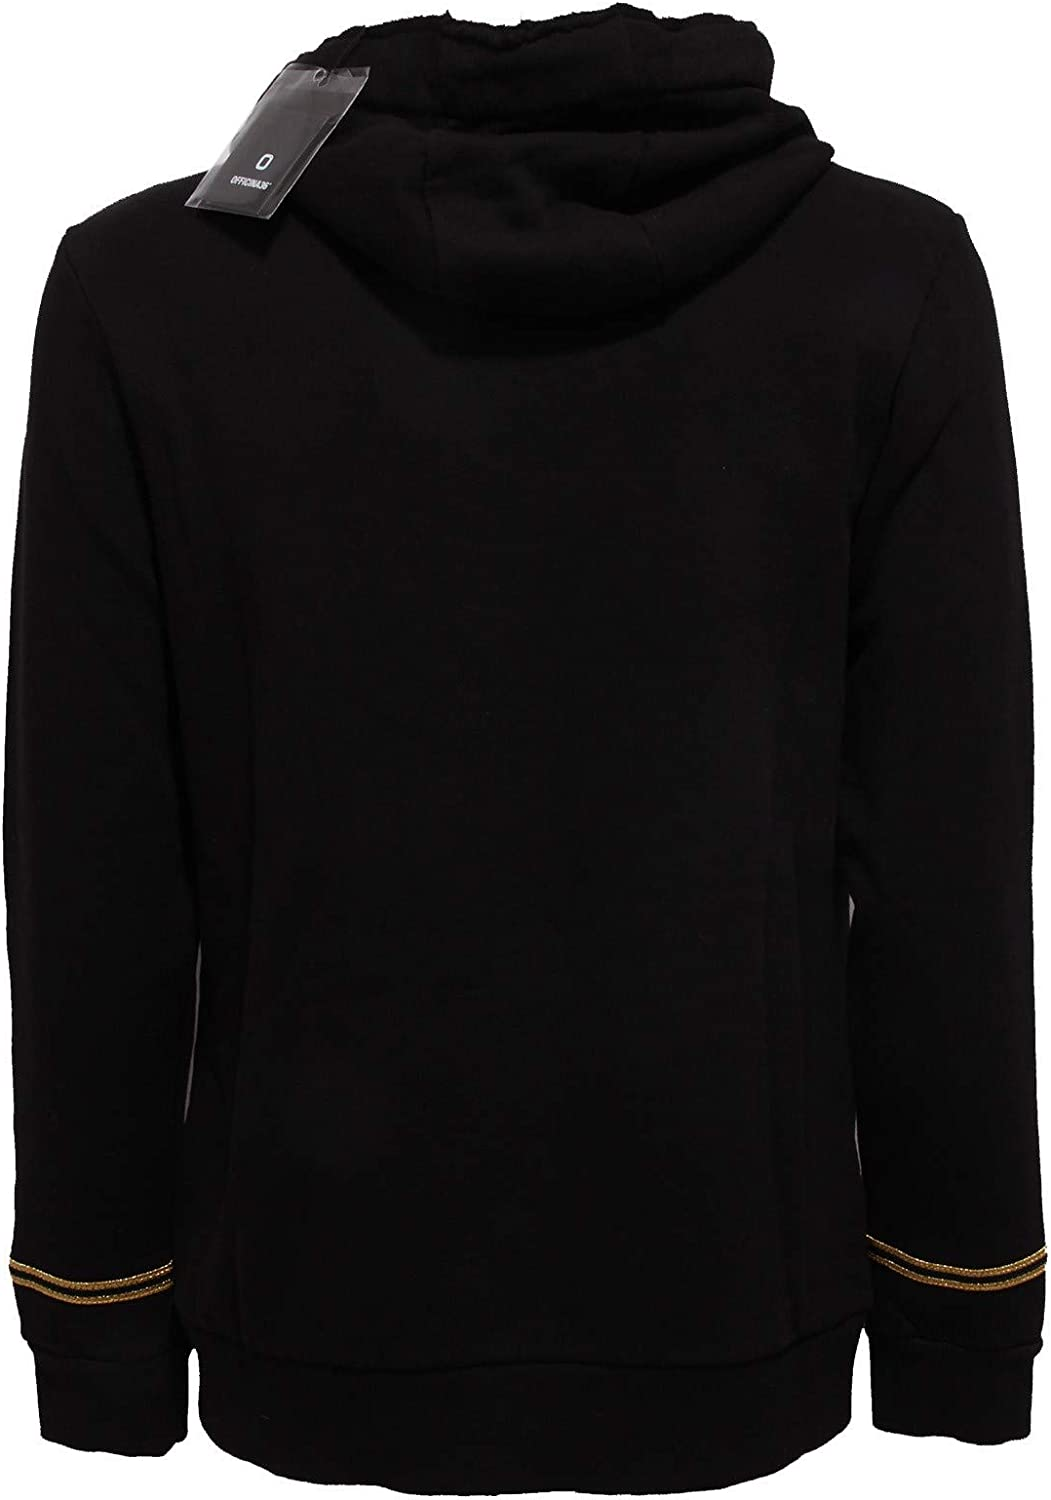 8703AA Felpa Uomo OFFICINA36 Black Cotton Full Zip Hoodie raw Cut Sweatshirt Man Nero